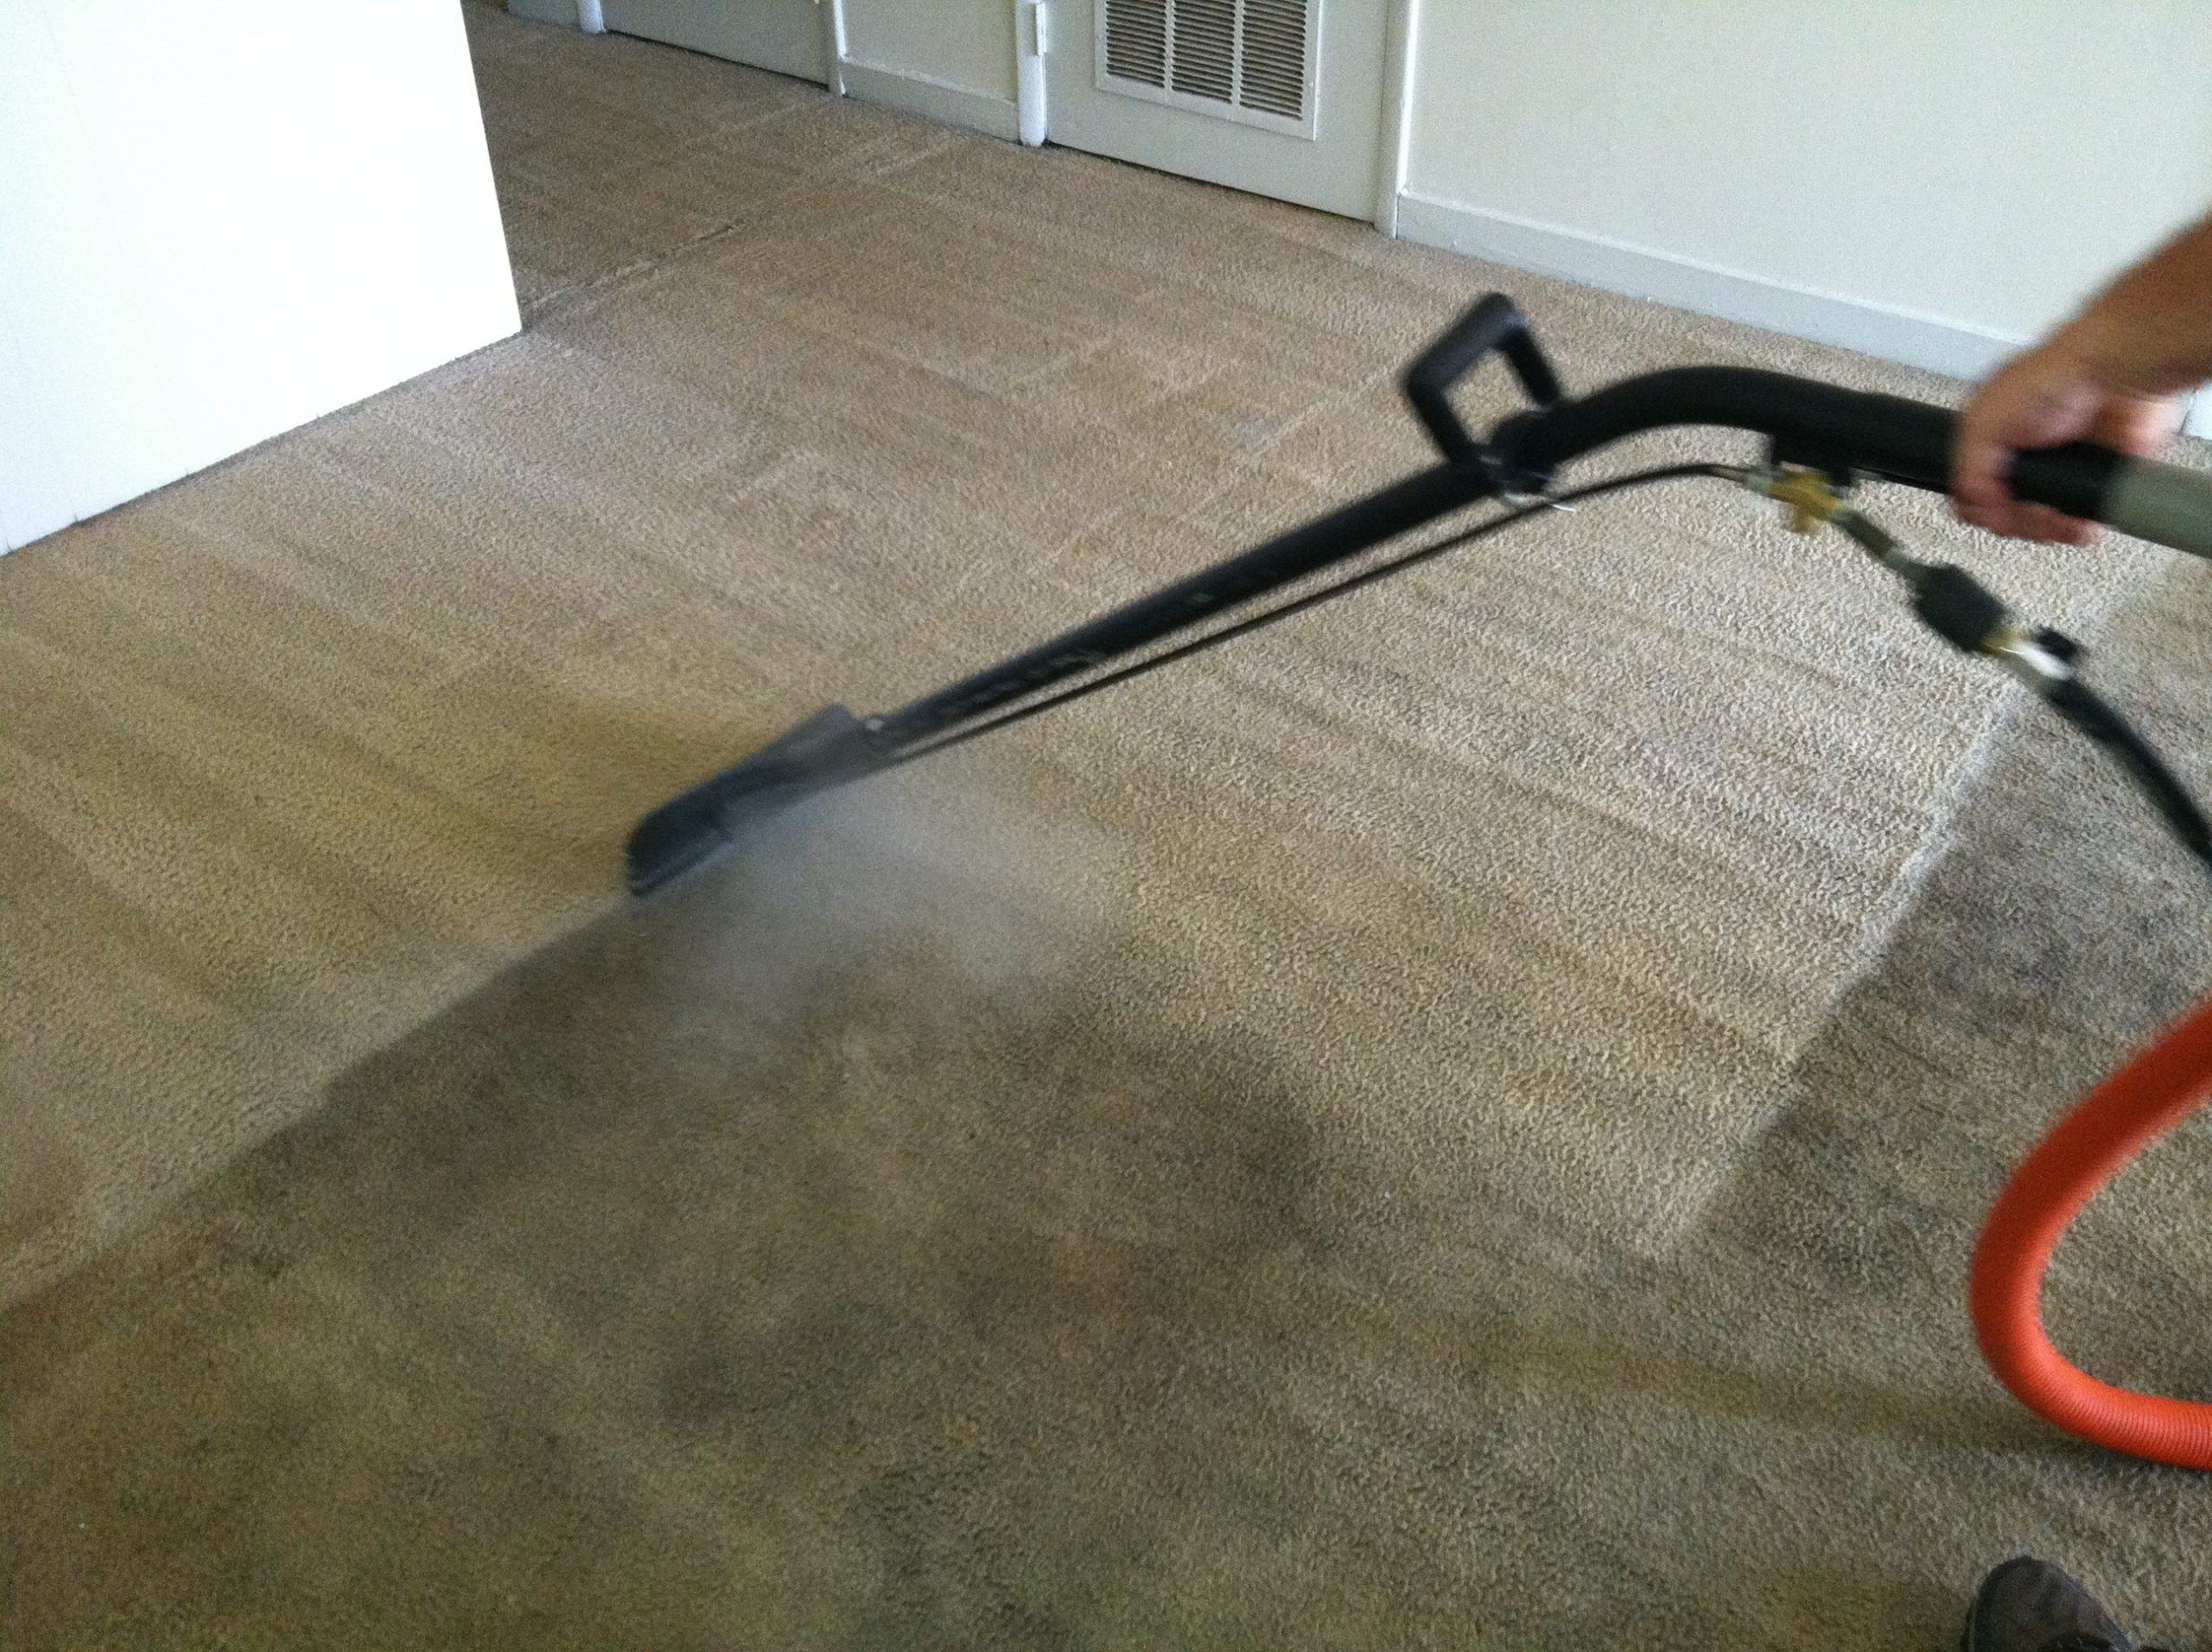 Reasons Why You Should Hire Professional Carpet Cleaning Services